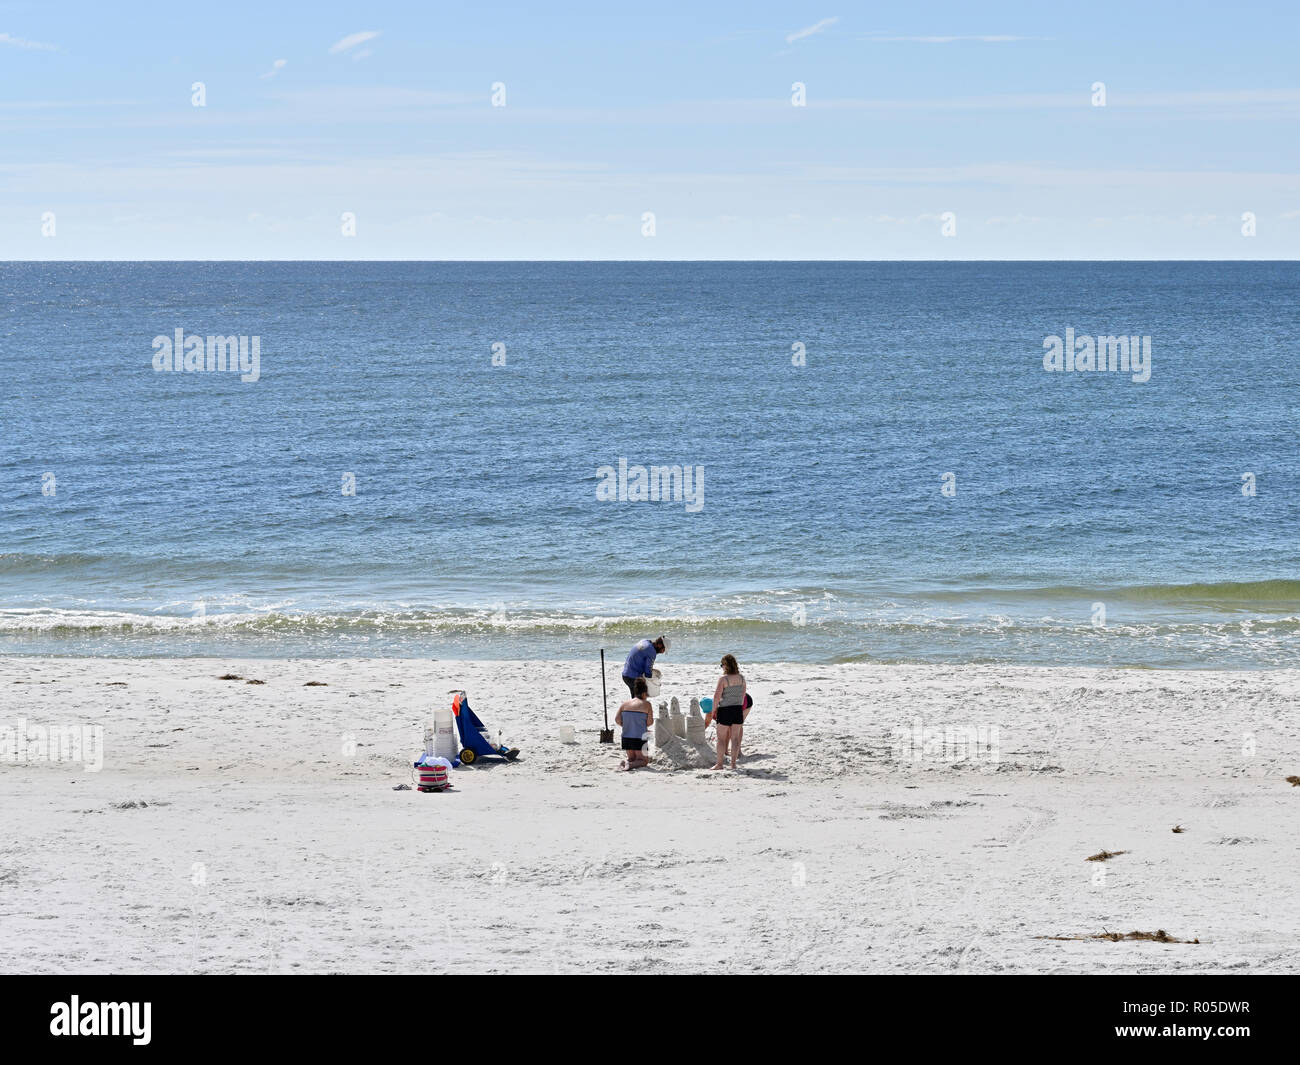 Family building a sand castle on the Florida beach at Deer Lake State Park, Florida USA. Stock Photo